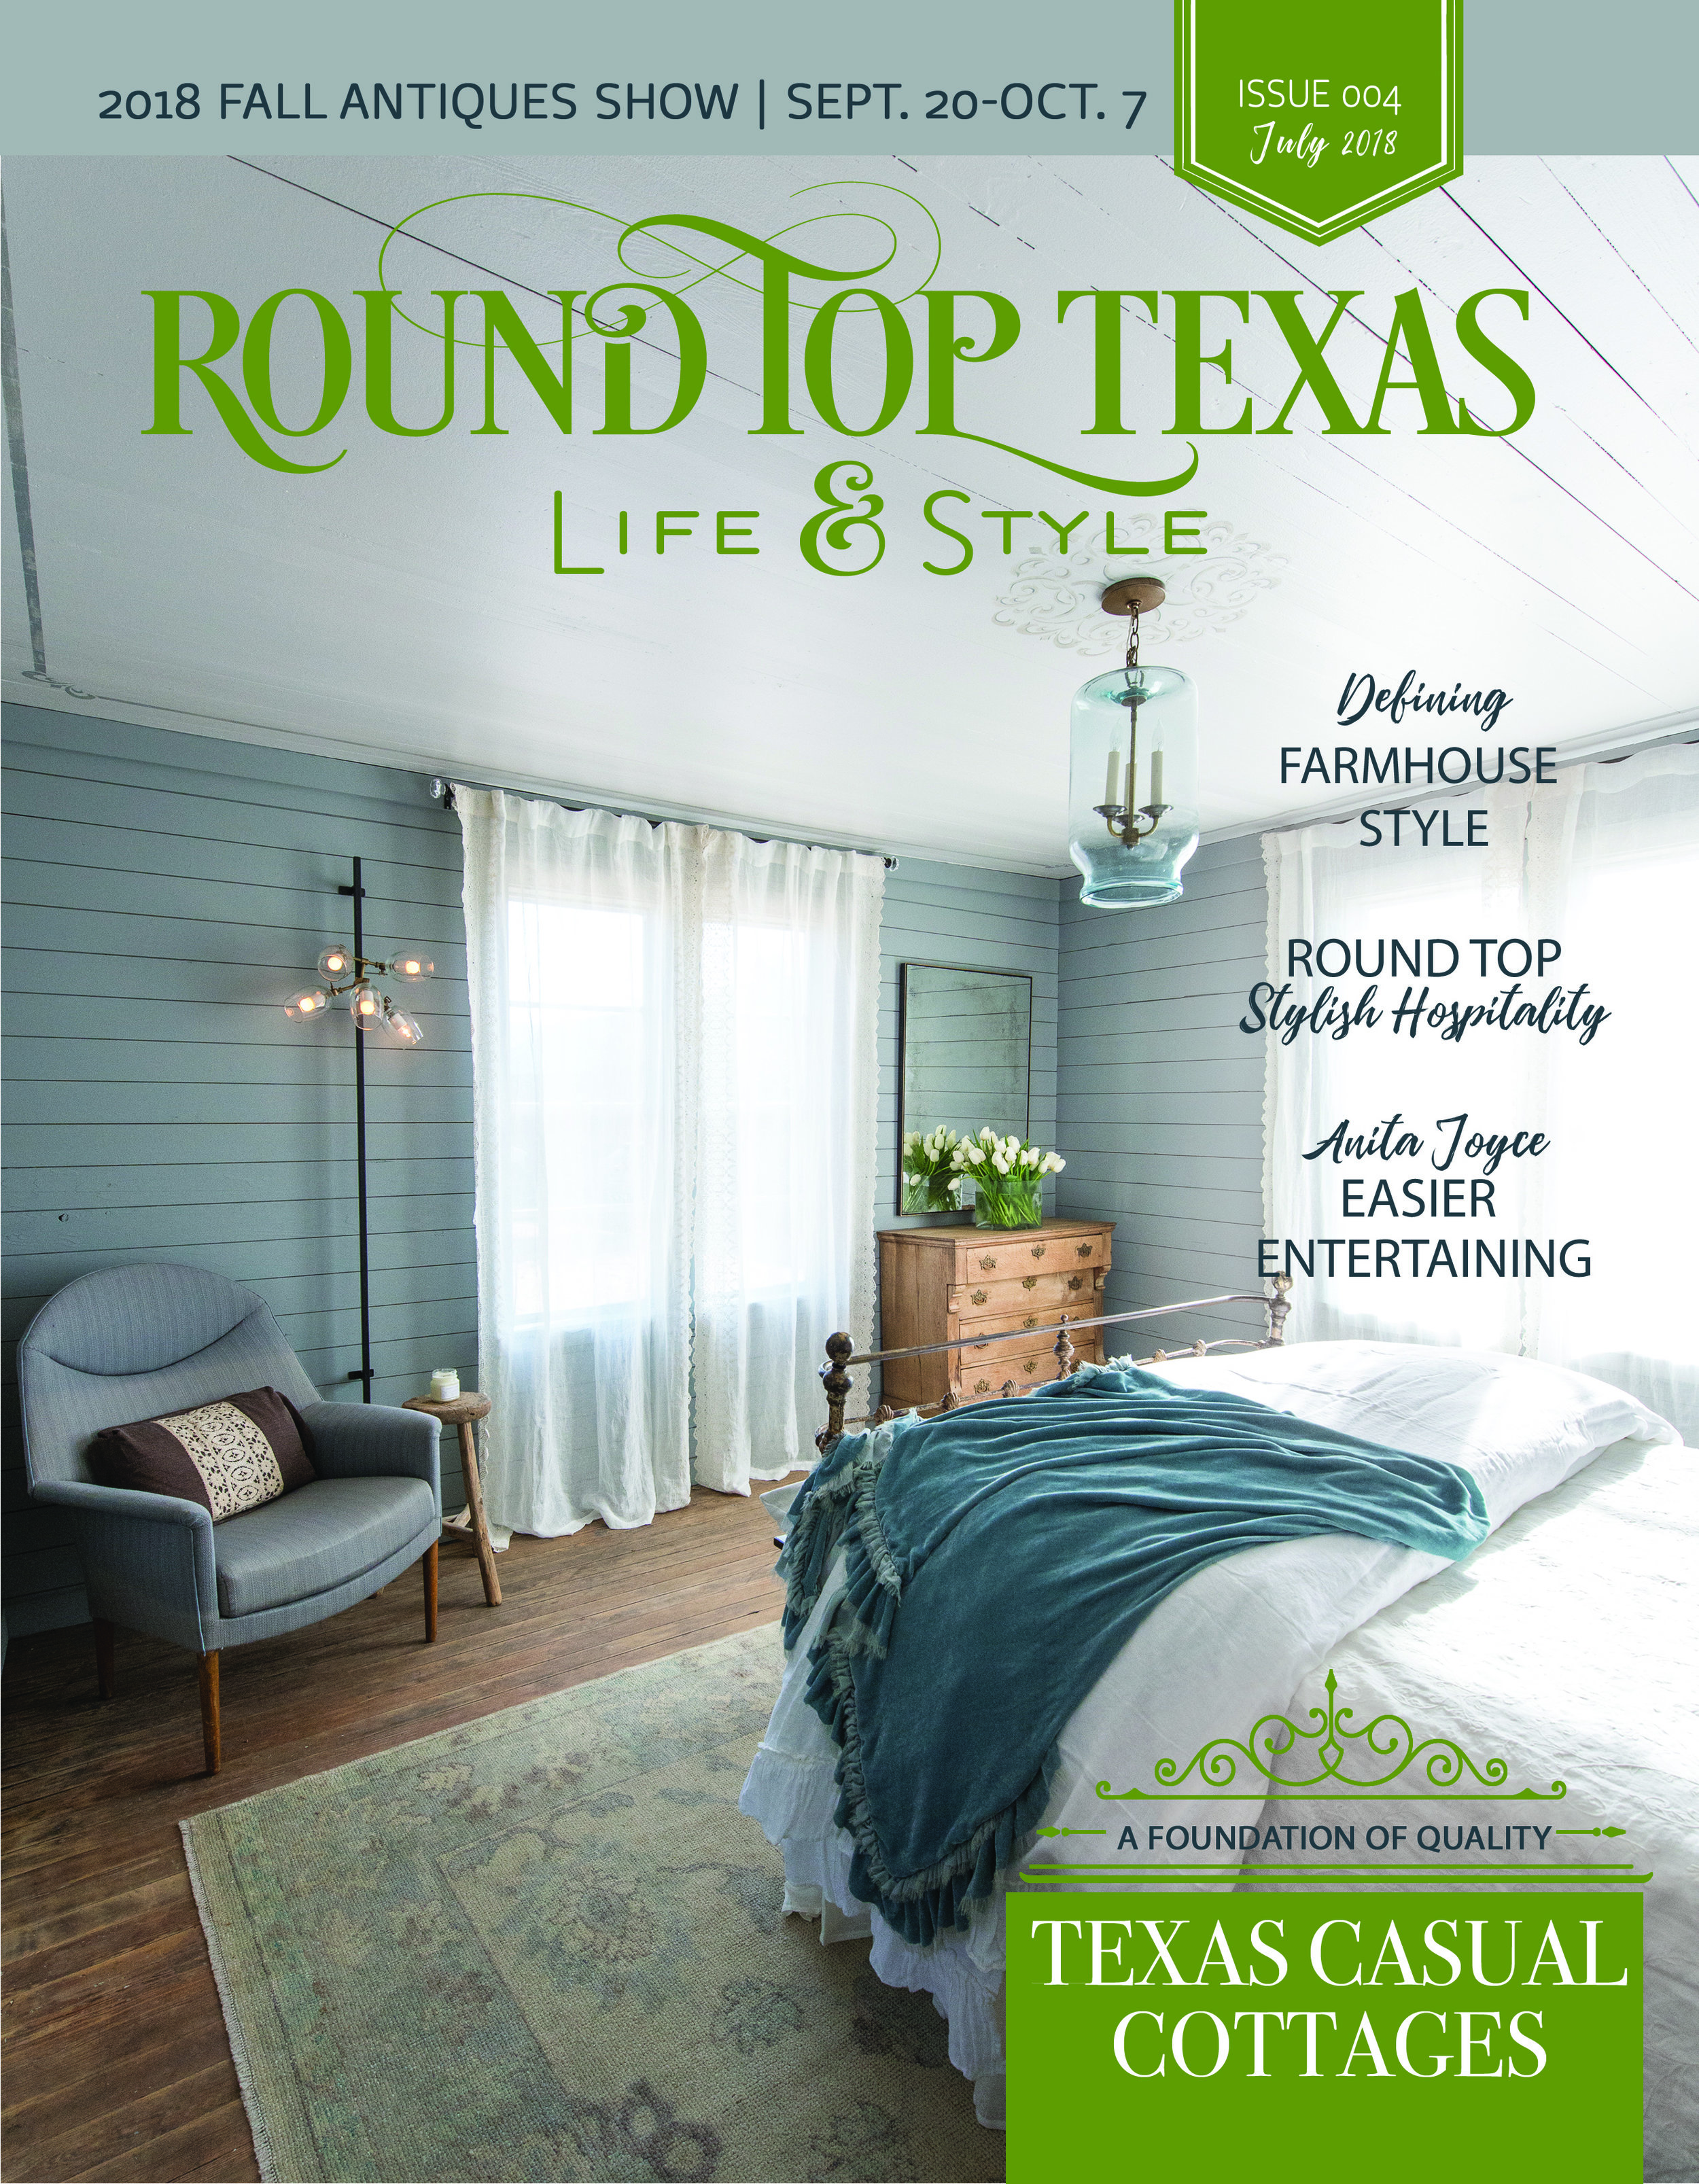 Round Top Texas Life & Style July 2018